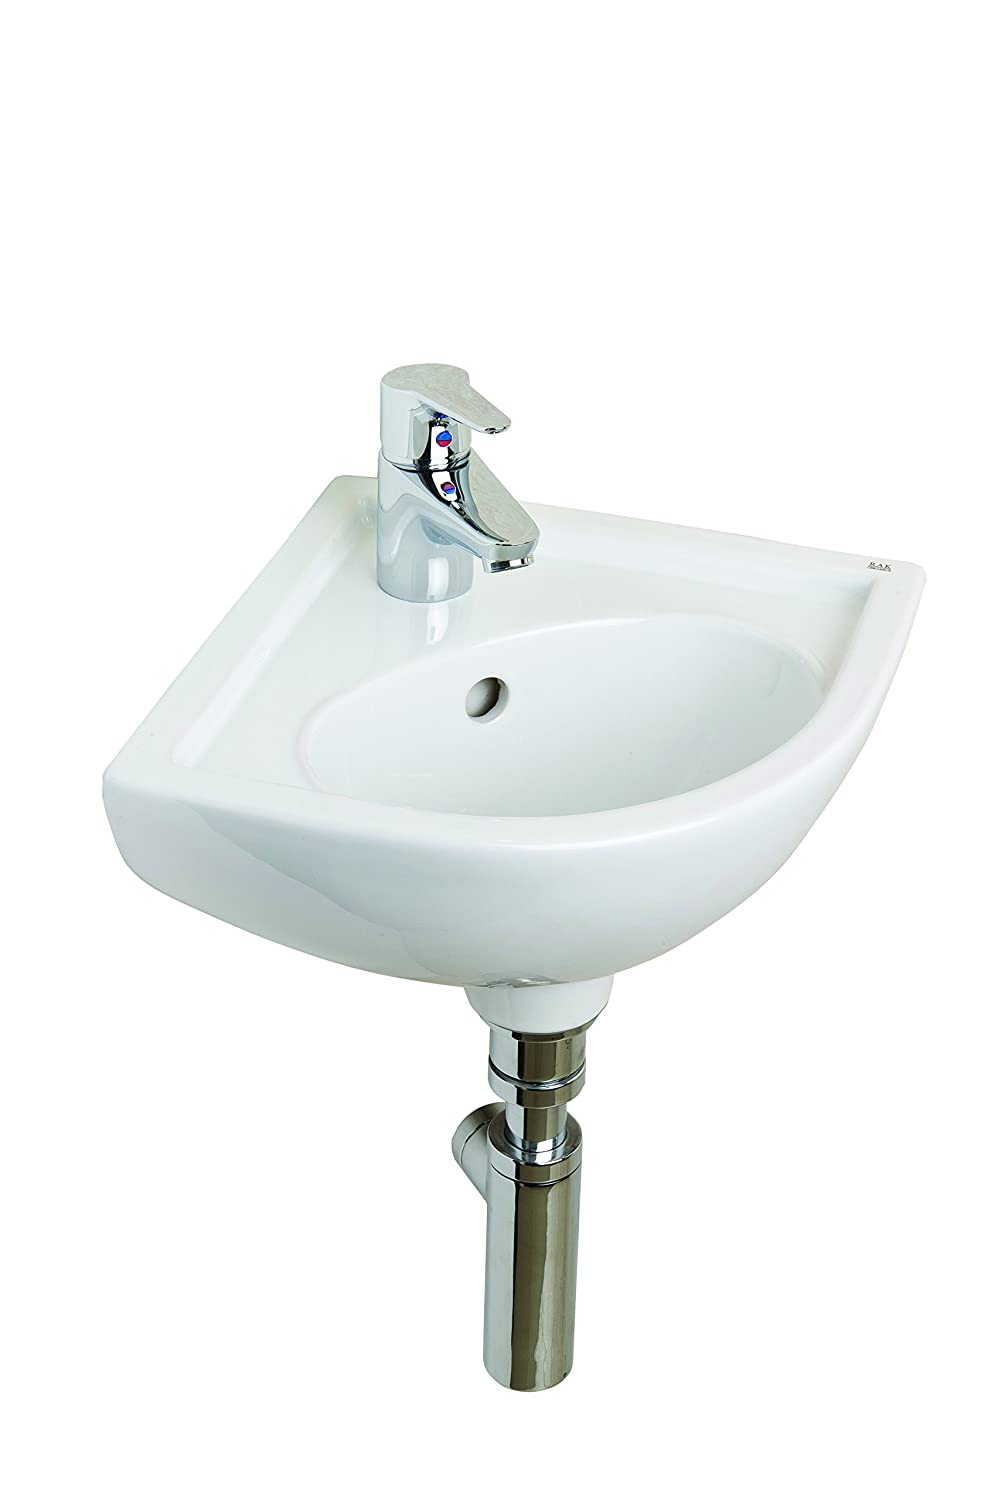 Rak Ceramics COMCNRB1 Compact Corner Basin 1th